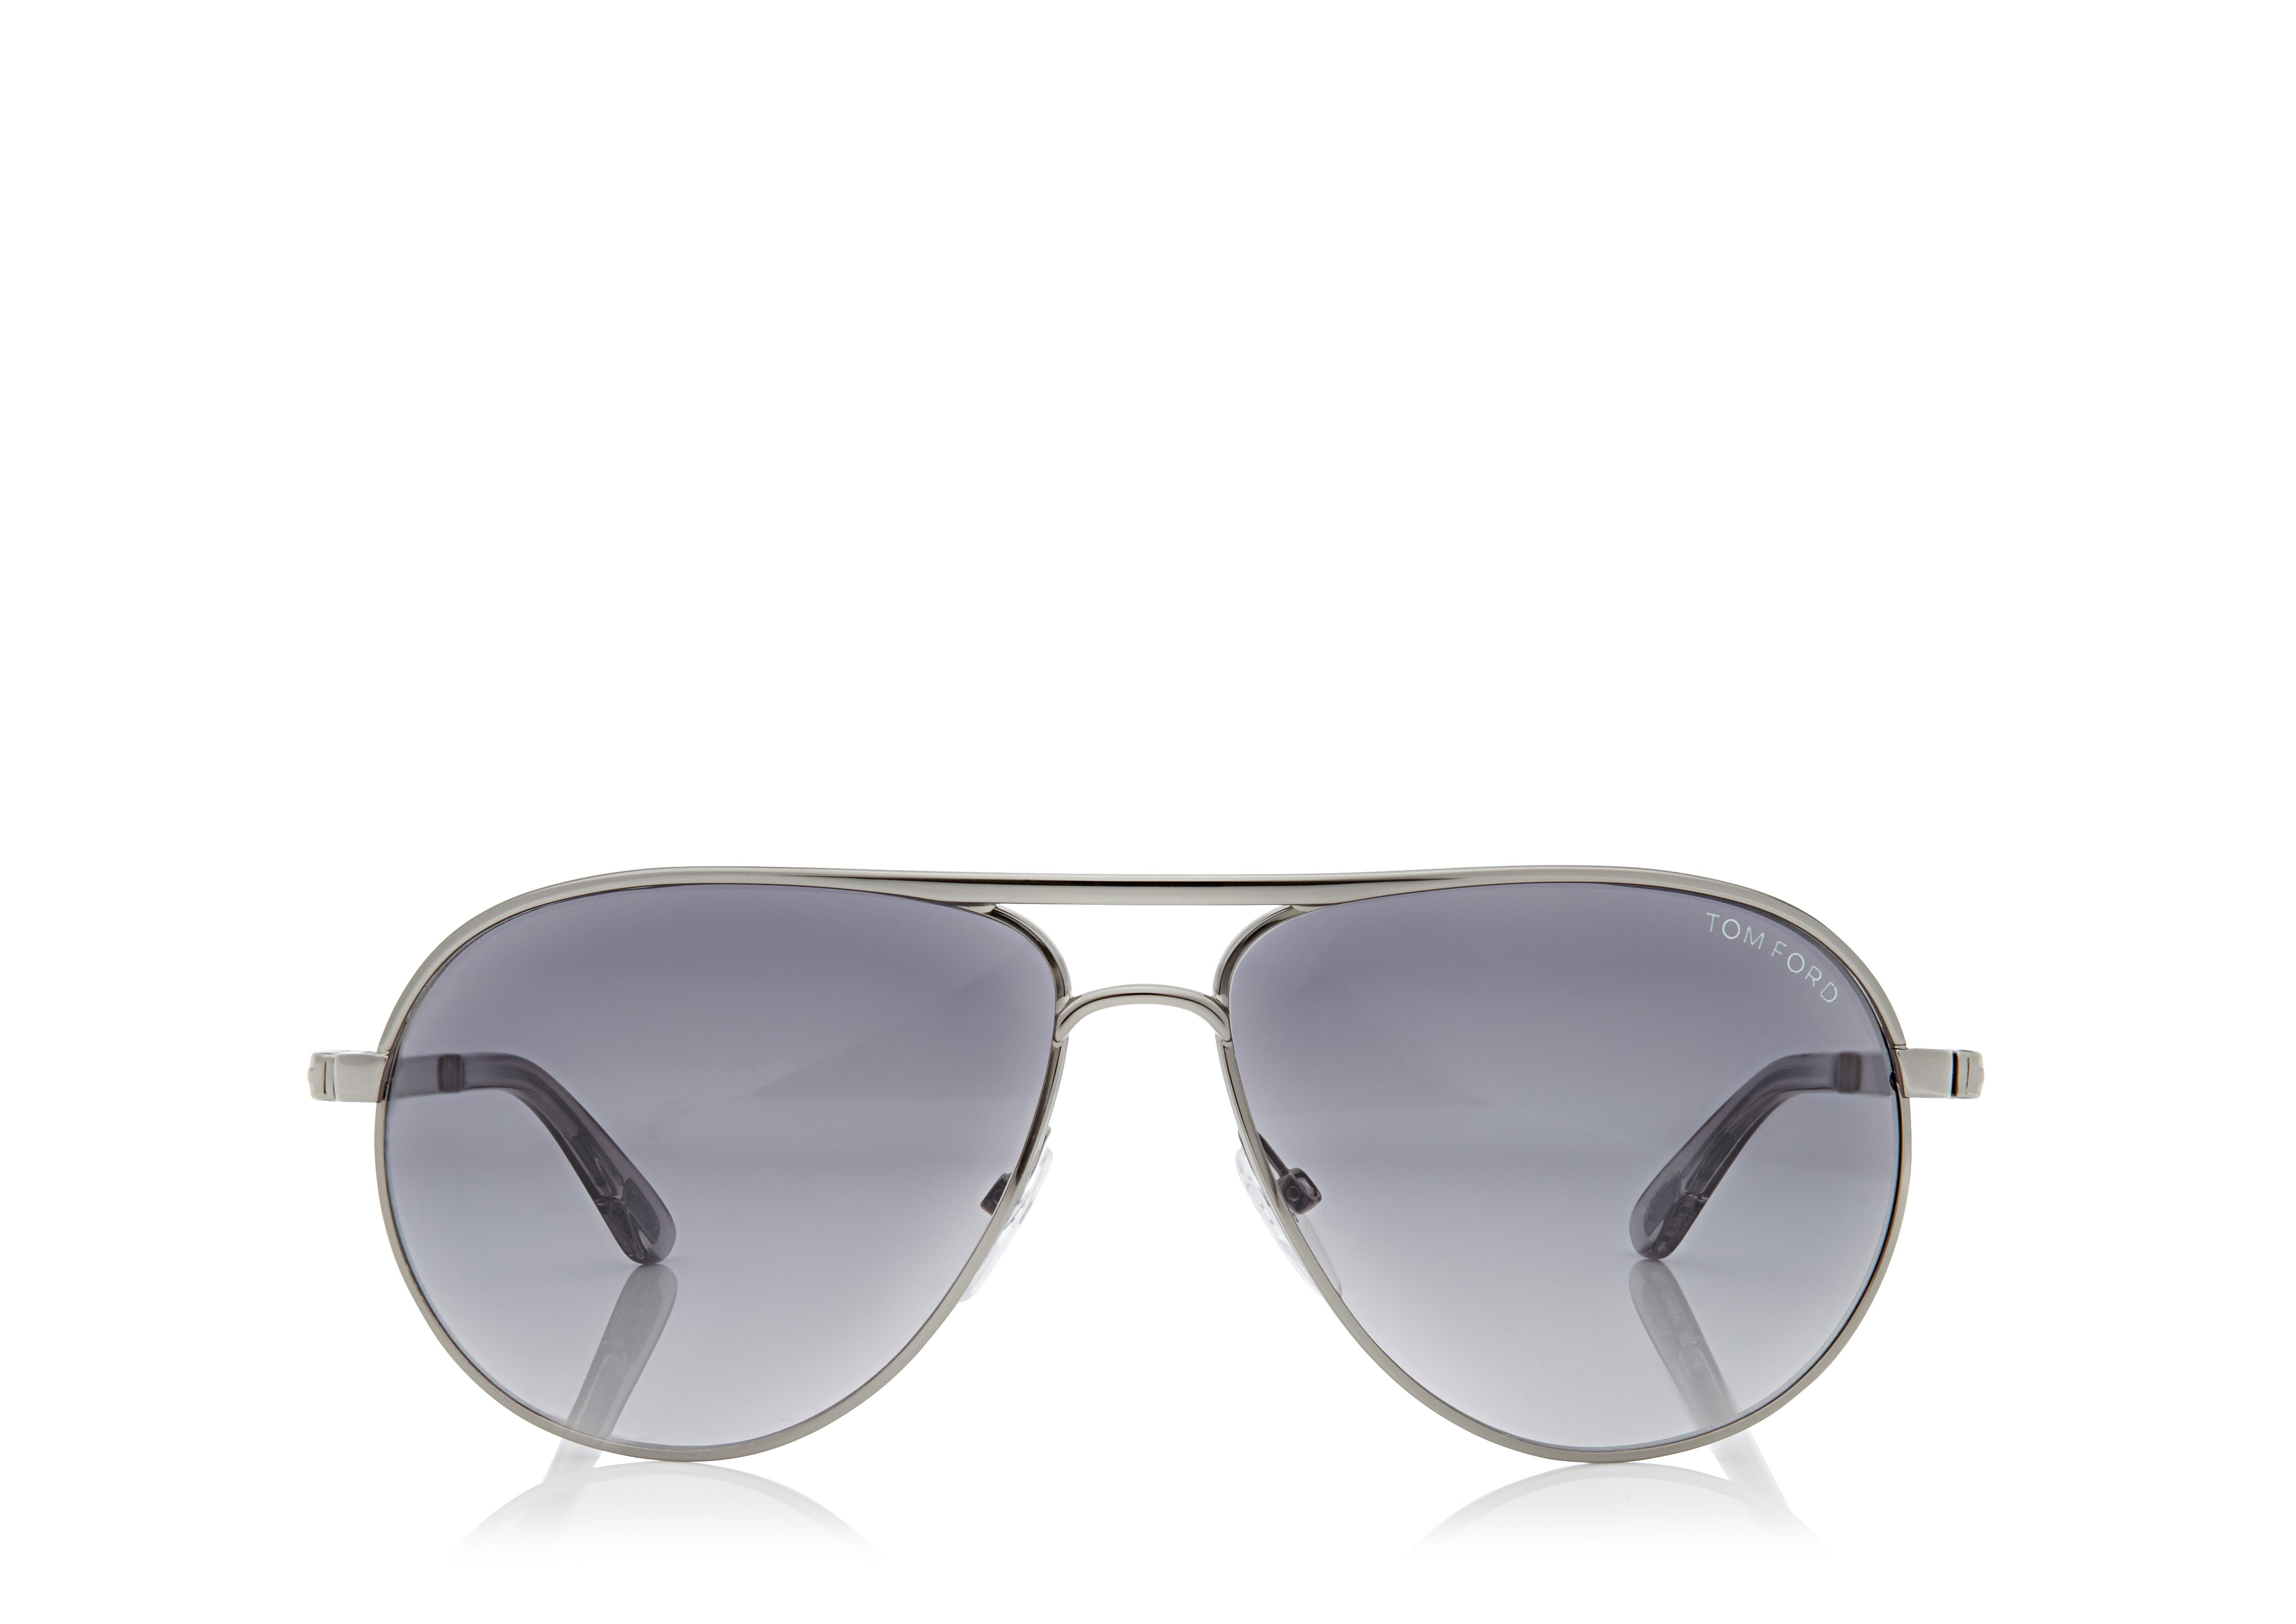 Marko Aviator Sunglasses A thumbnail